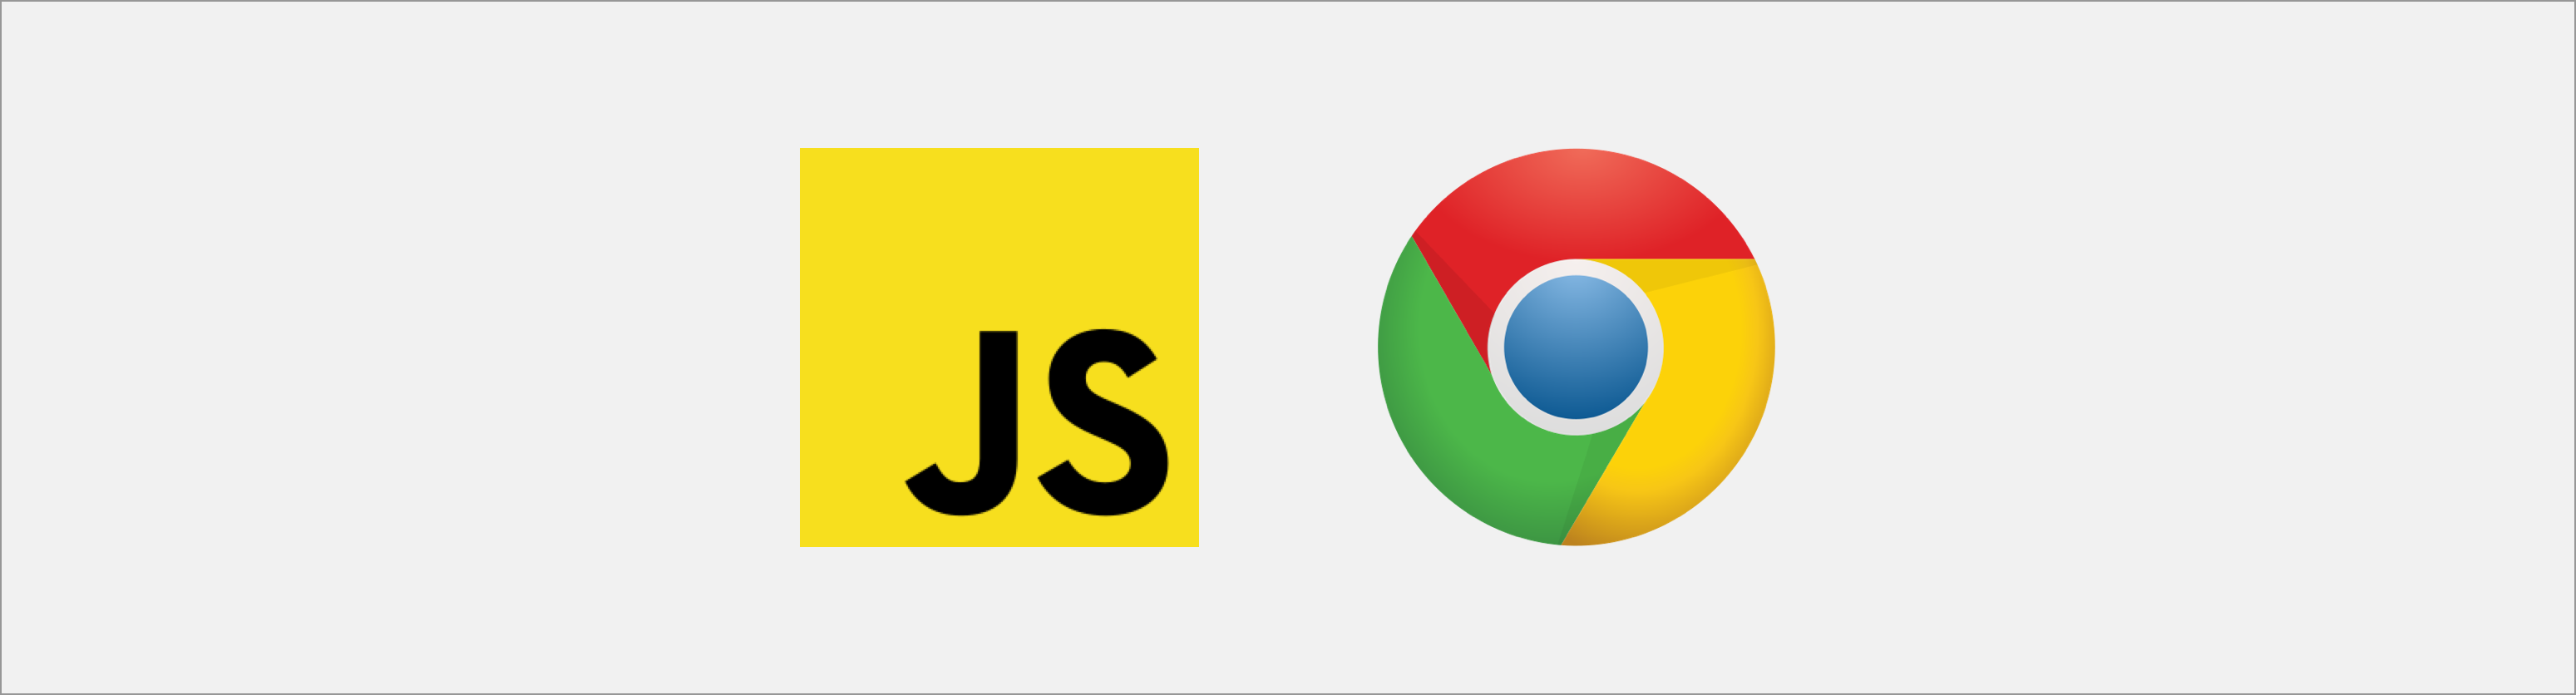 JavaScript and Chrome logo